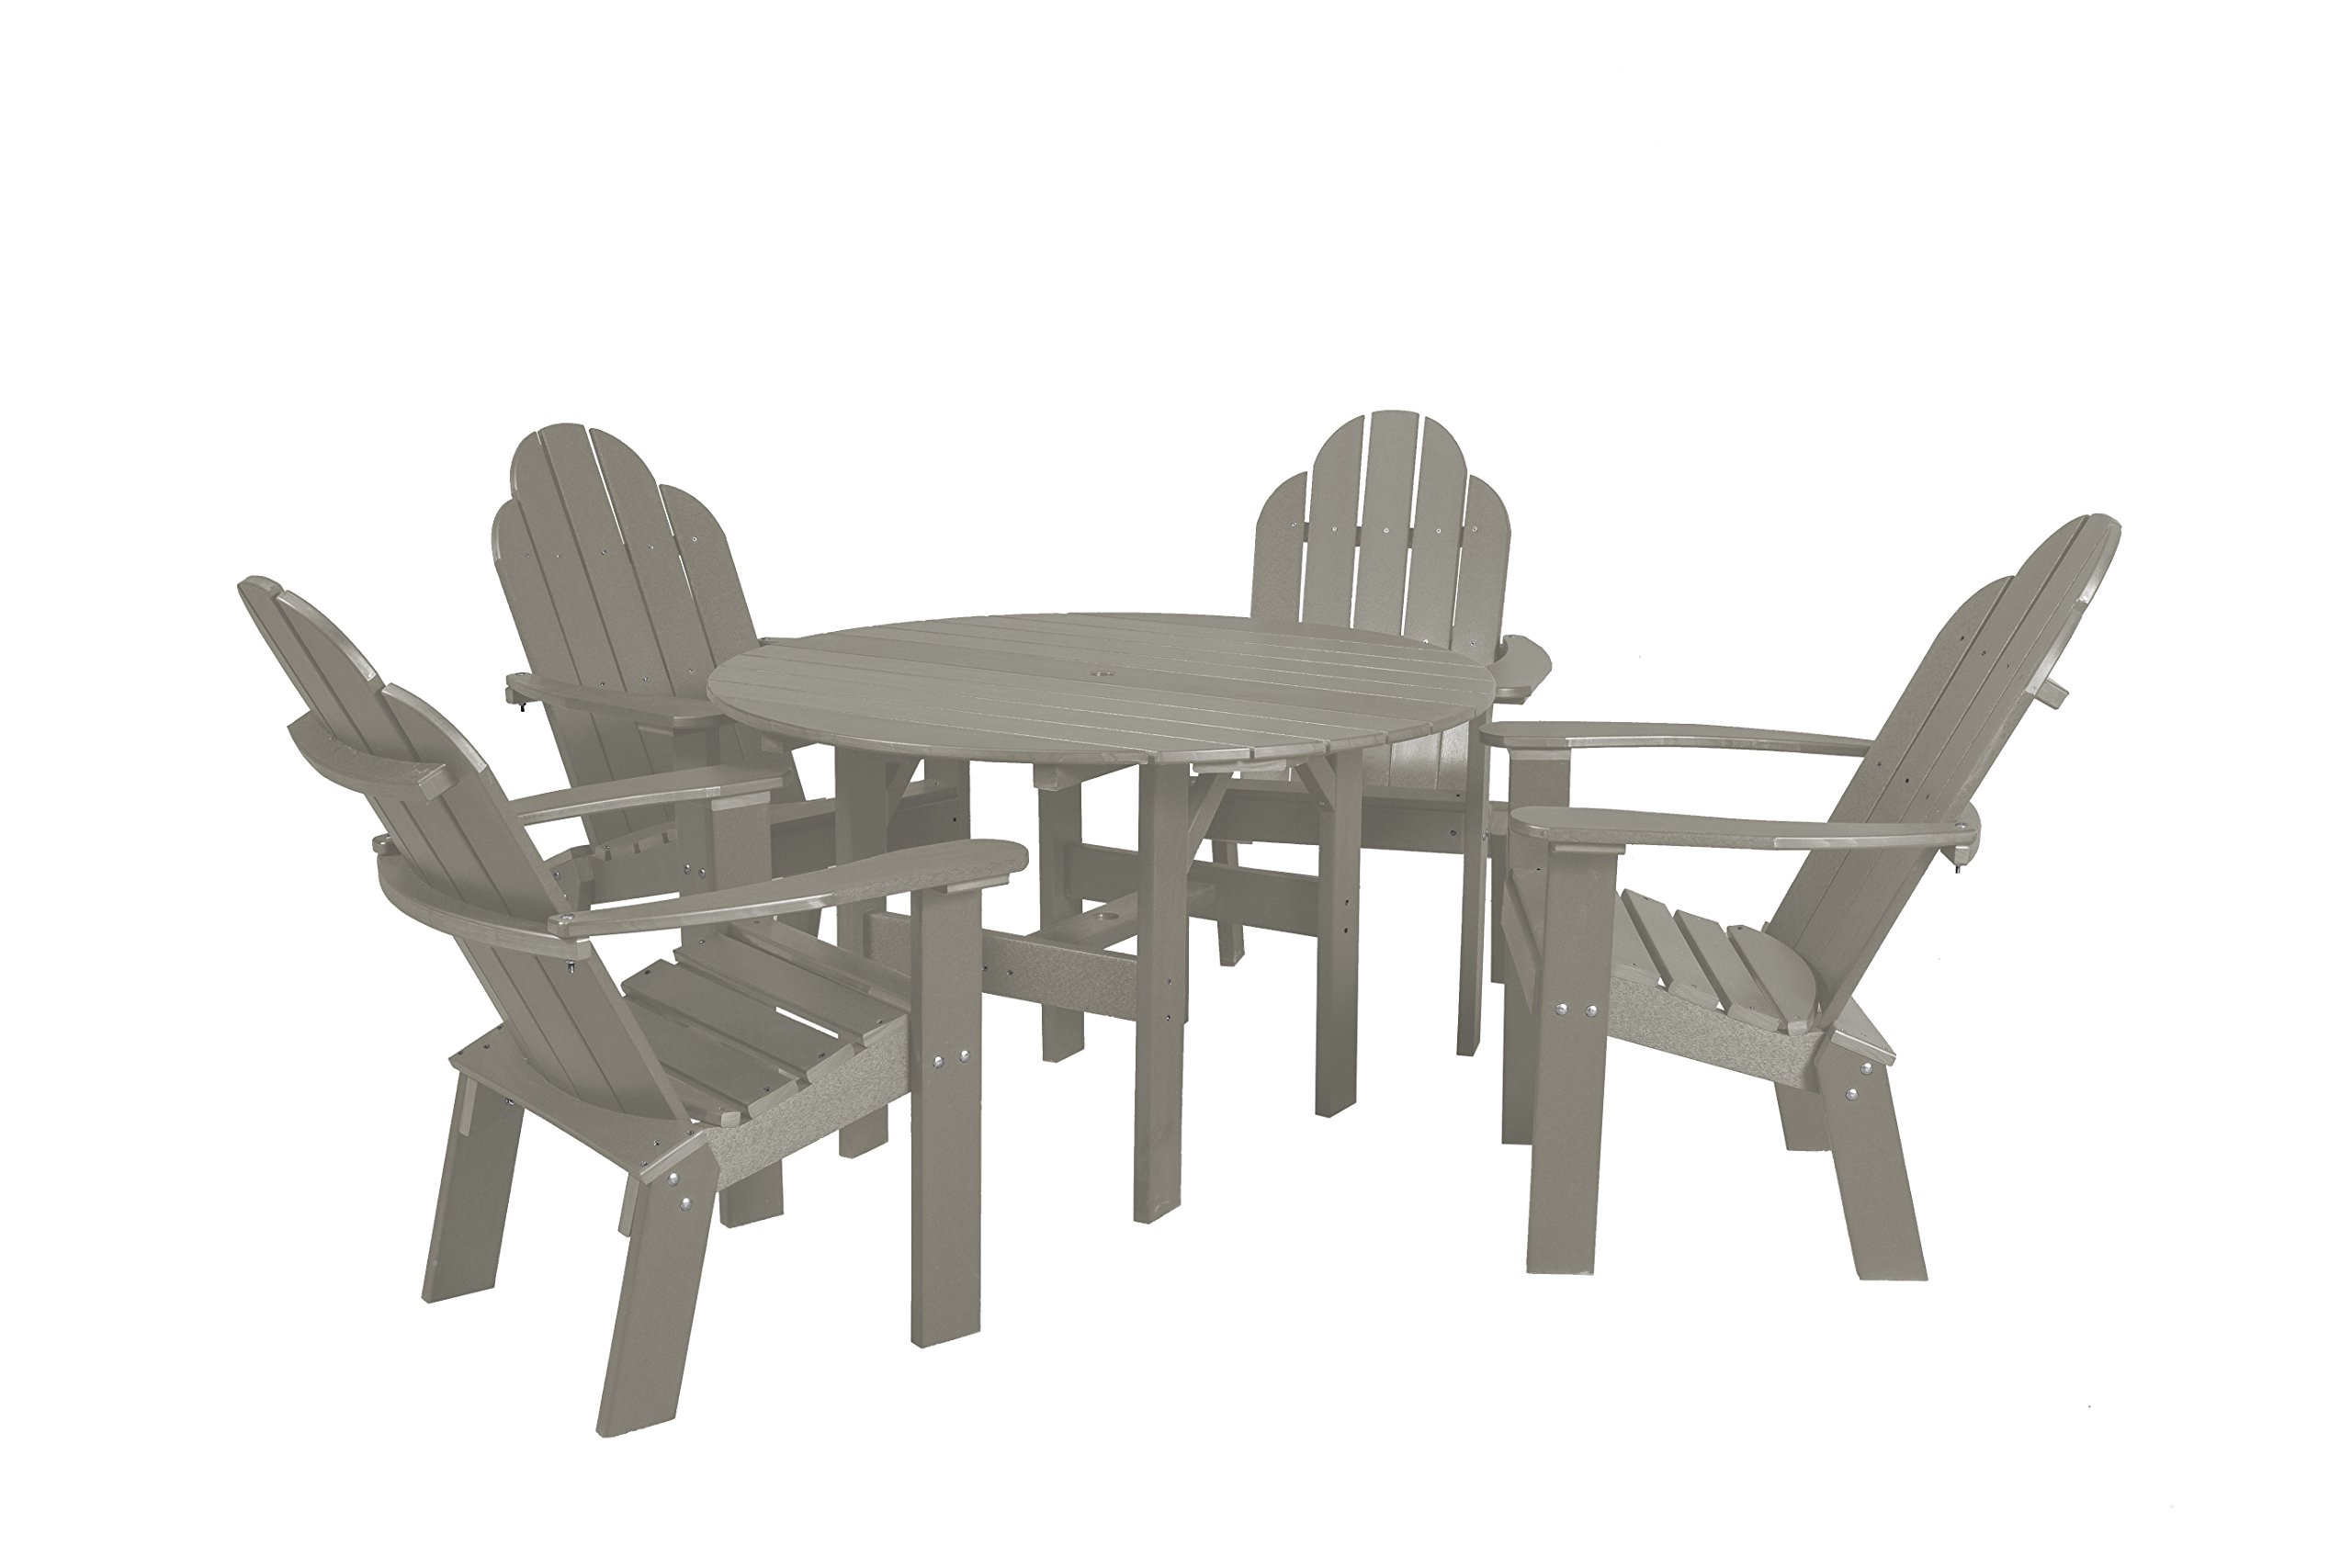 Little Cottage Company Lcc-280 Classic Round Table with 4 Deck Chairs, 46'', Light Gray